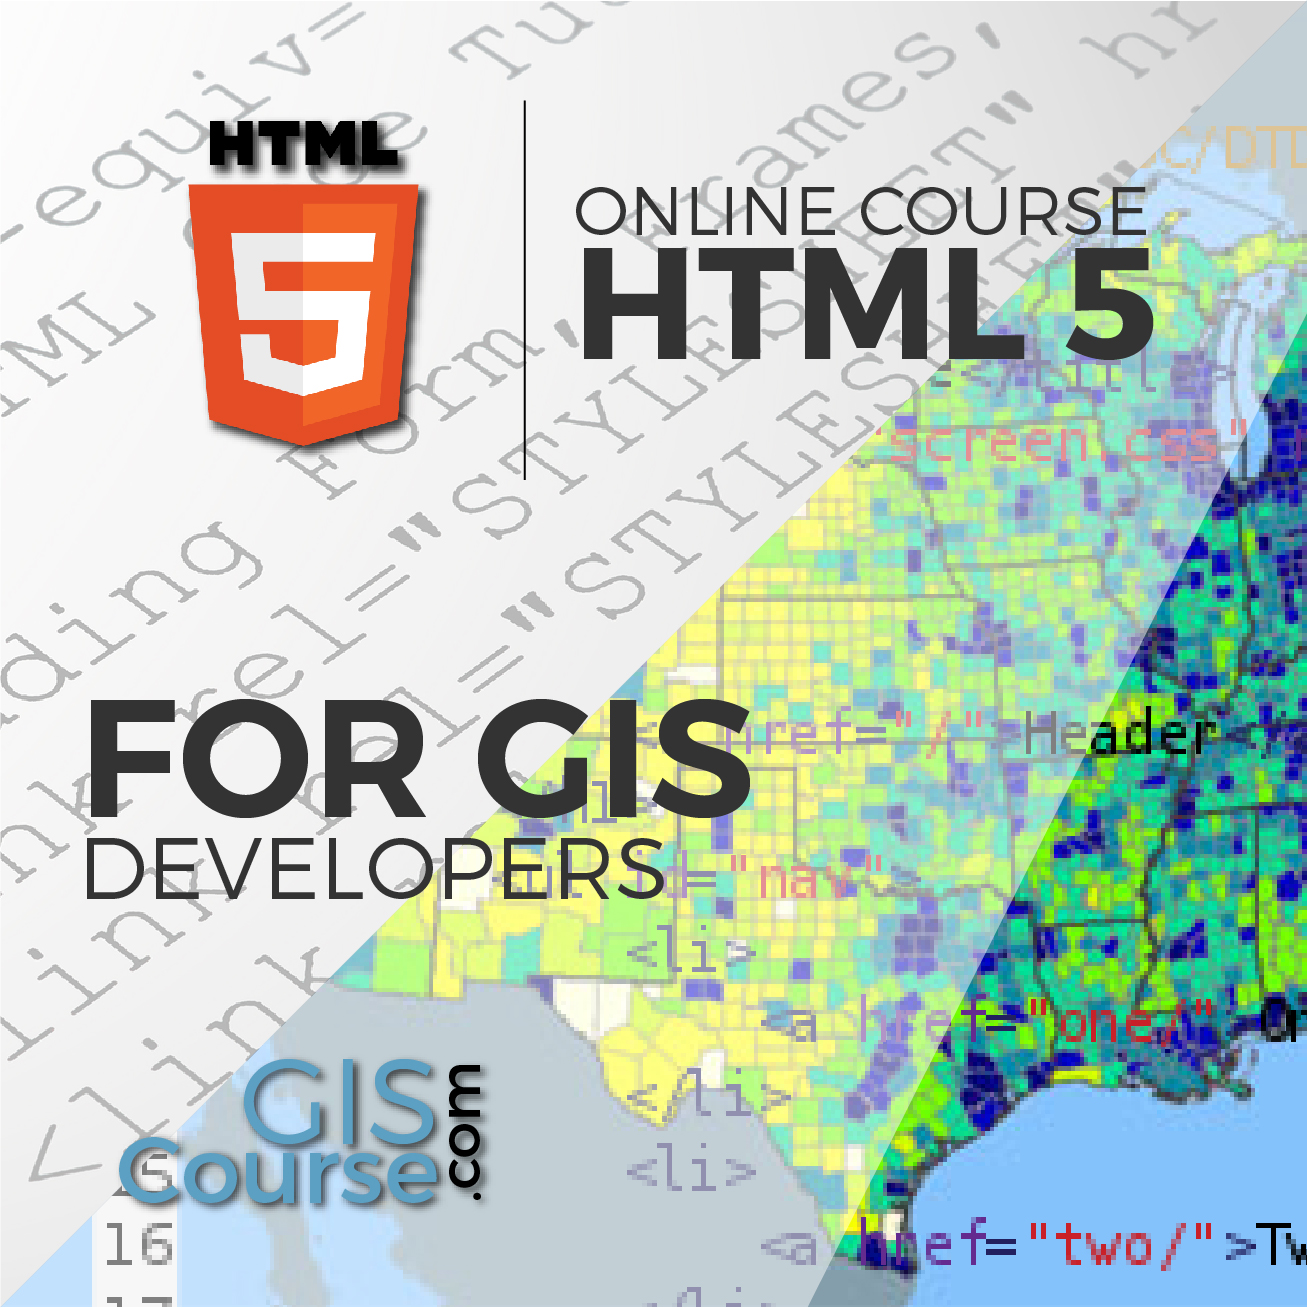 Html5 For Gis Developers Gis Course Tyc Gis Training